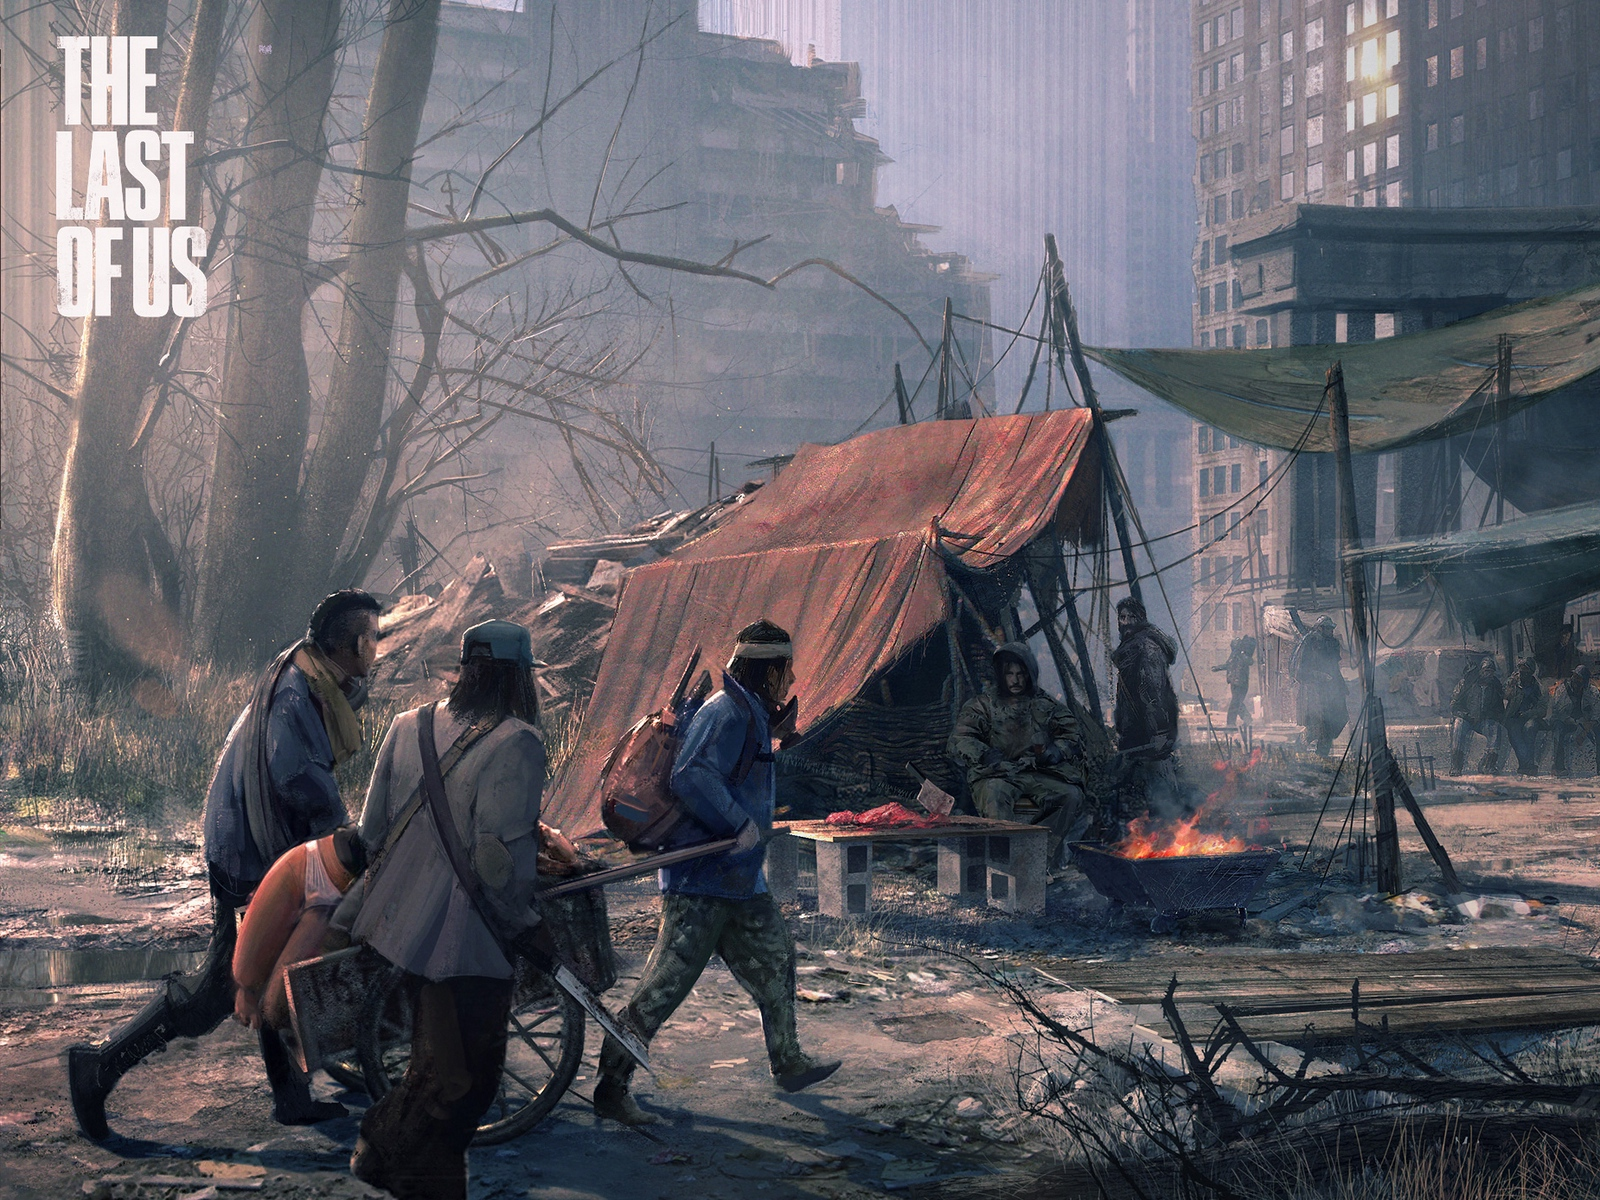 Wallpaper The Last Of Us City Doomsday People Art 1481499 Hd Wallpaper Backgrounds Download